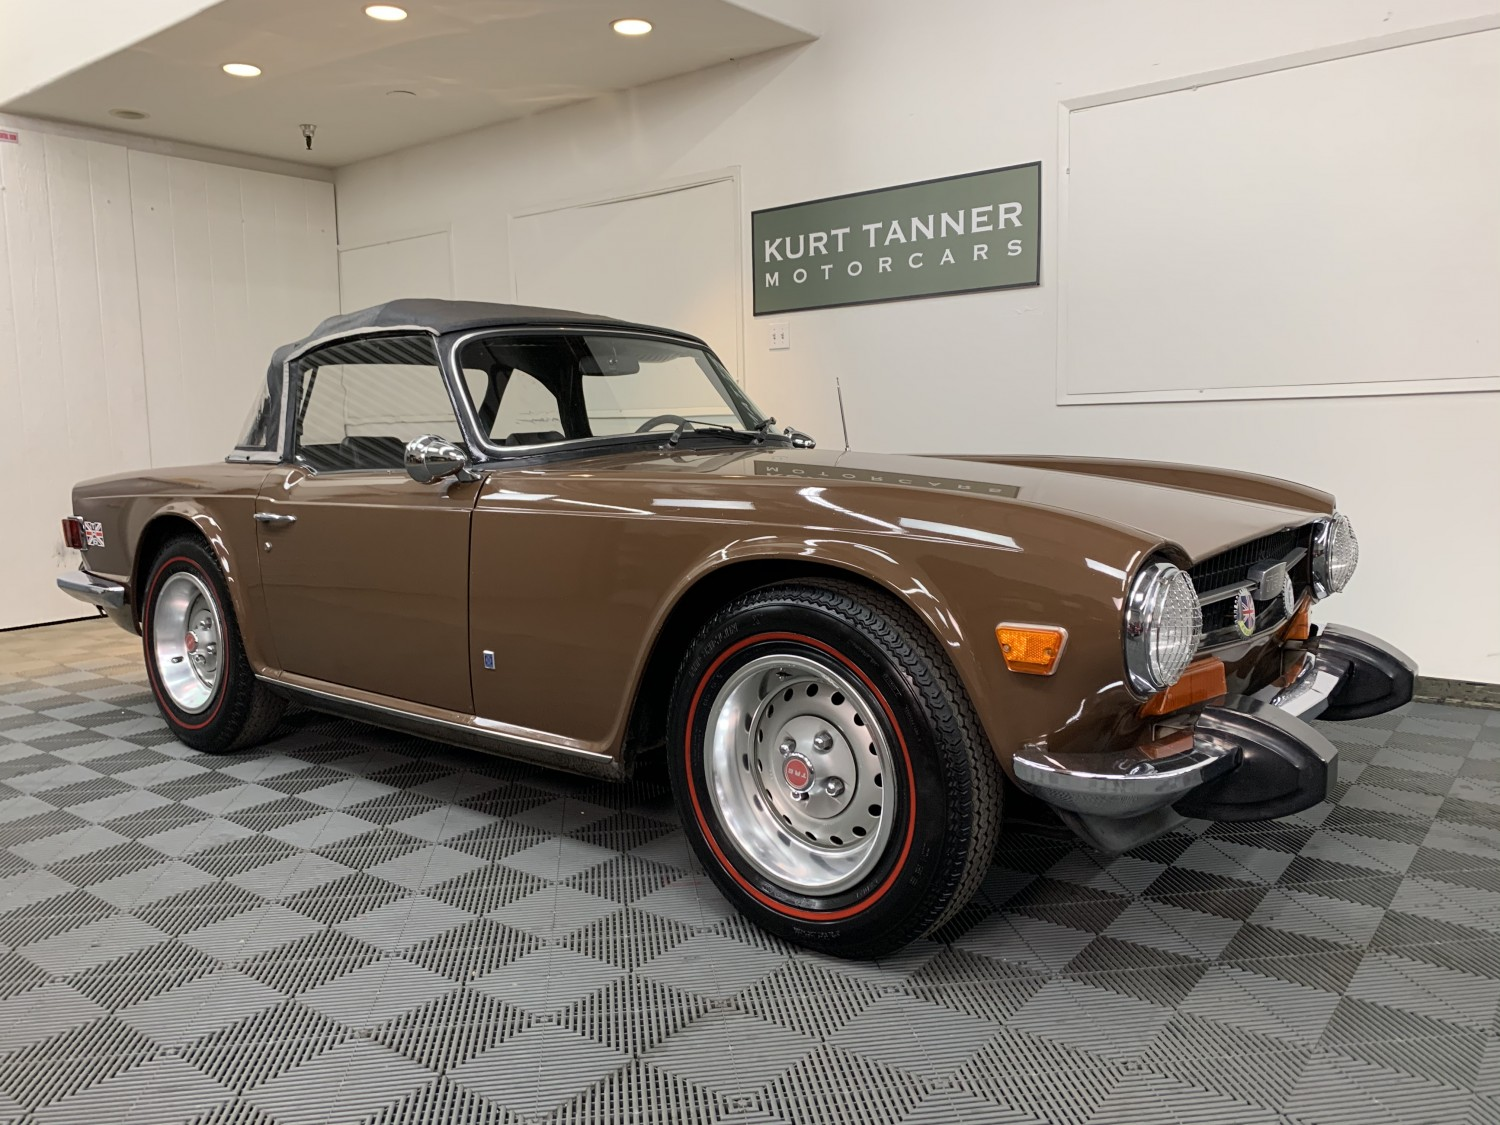 1974 TRIUMPH TR-6 CONVERTIBLE. ORIGINAL PAINT, SIENNA BROWN WITH BLACK TRIM, SOFT TOP, AND TONNEAU COVER. 4-SPEED, STANDARD WHEELS. REDLINE TIRES.  EXCELLENT ORIGINAL WITH 67,318 MILES.